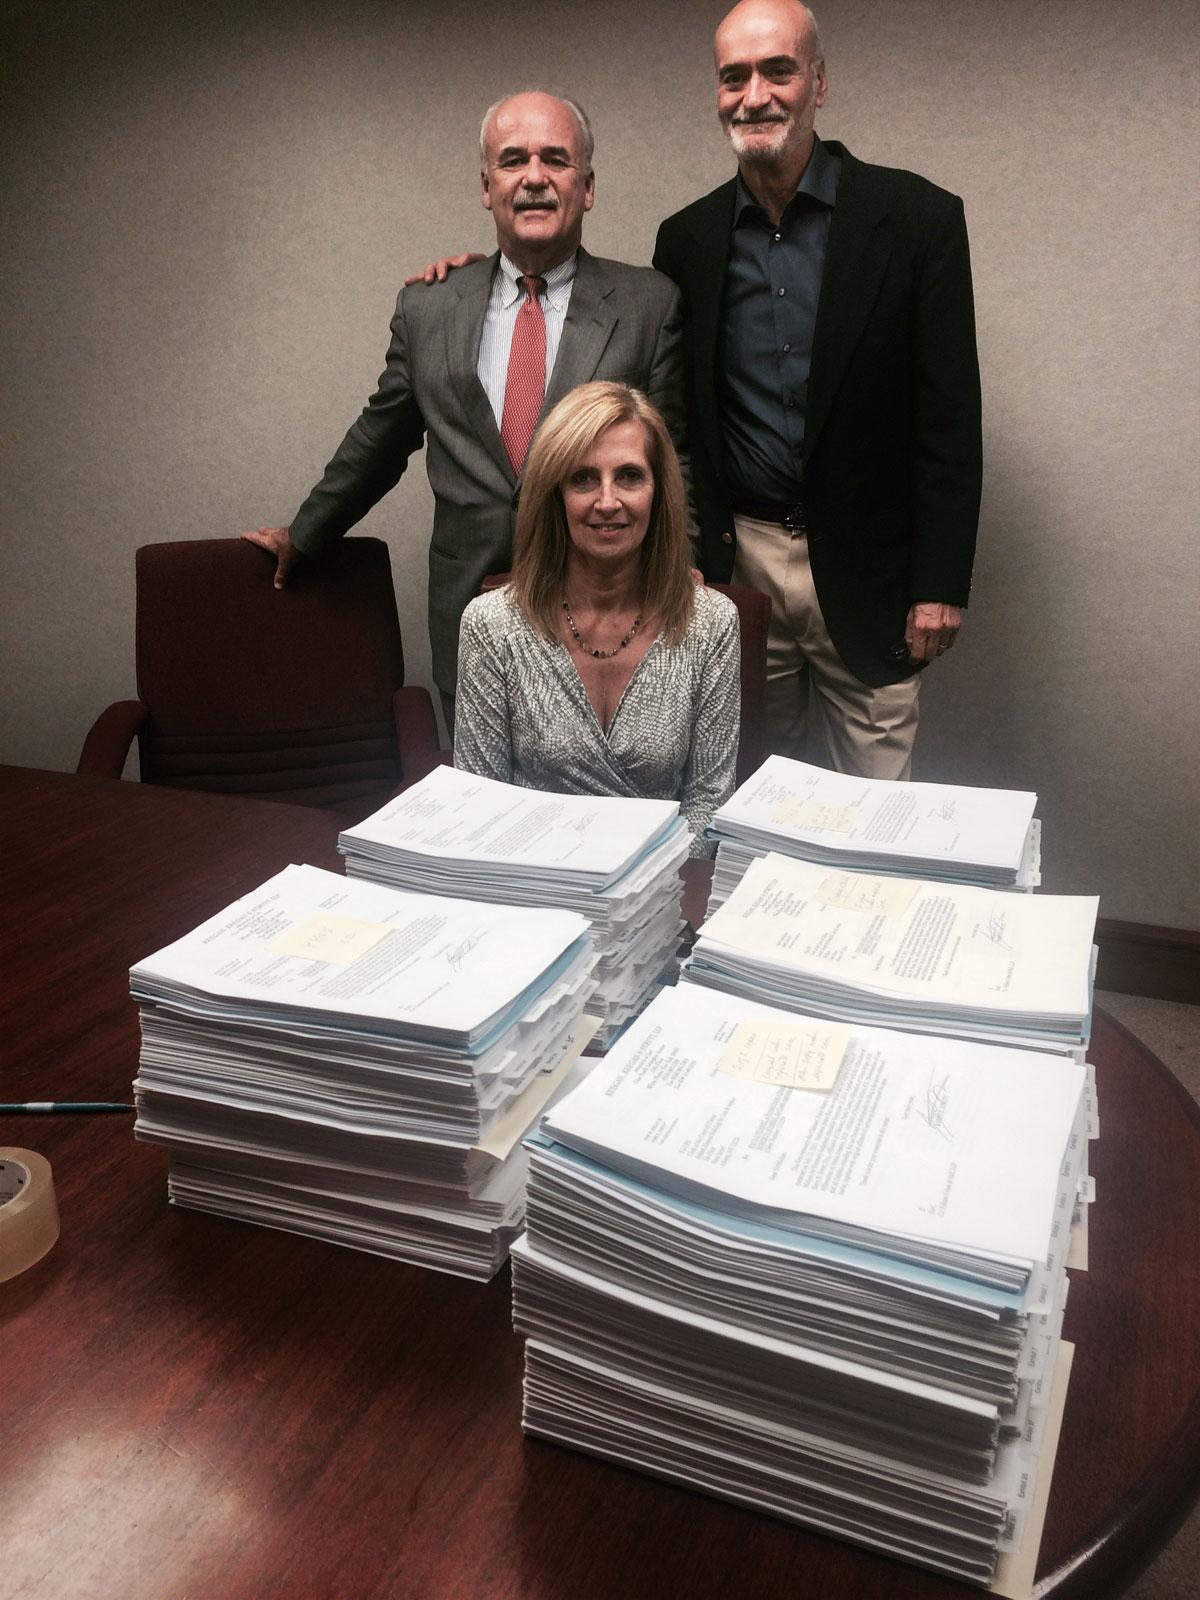 White Plains personal injury lawyers, John Keegan and Barry Strutt with their legal assistant, Lisa Logel